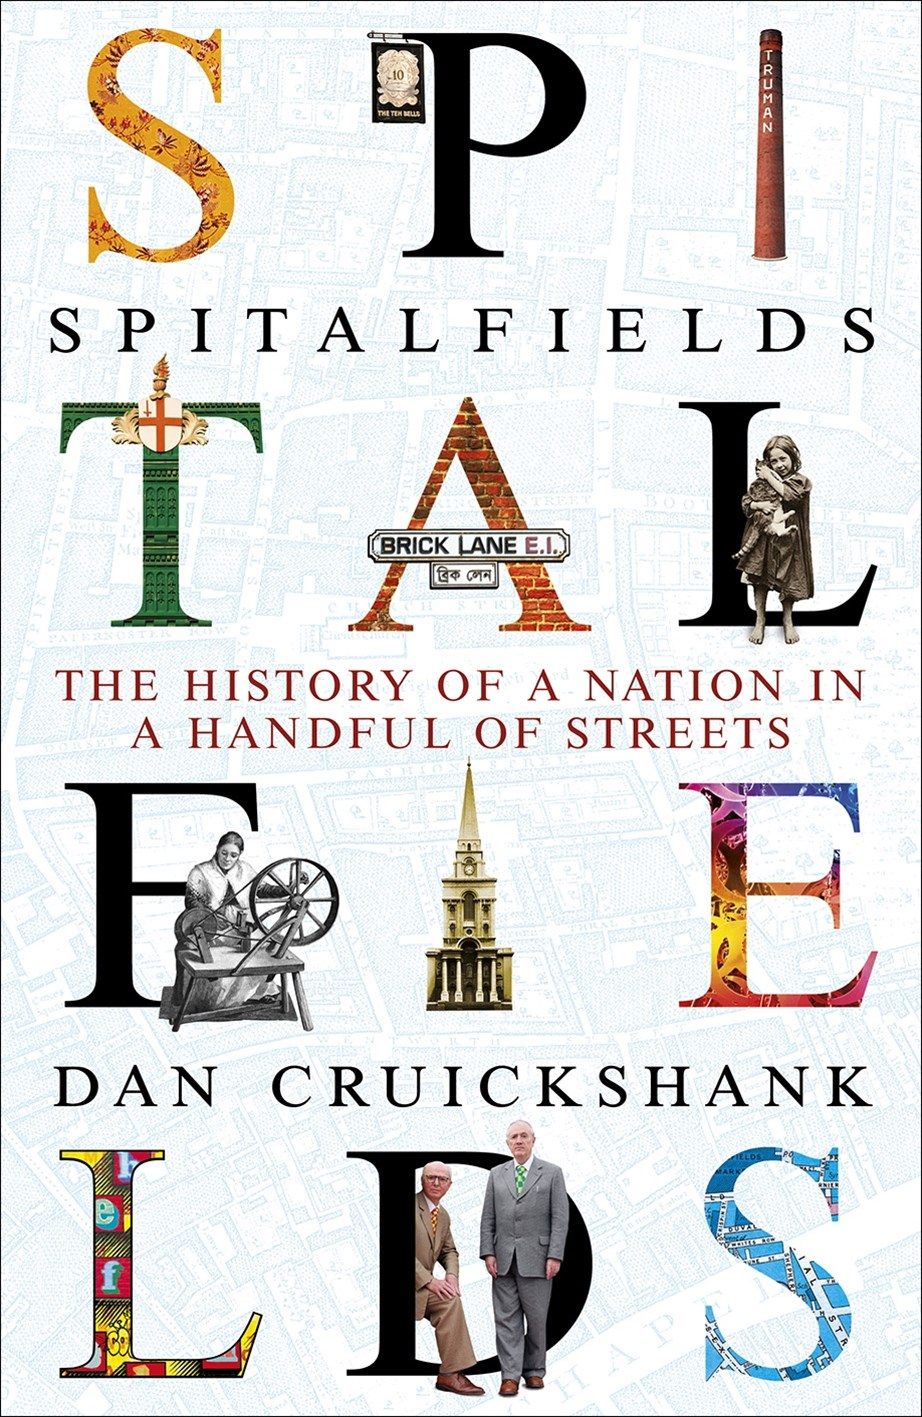 Spitalfields: The History of a Nation in a Handful of Streets